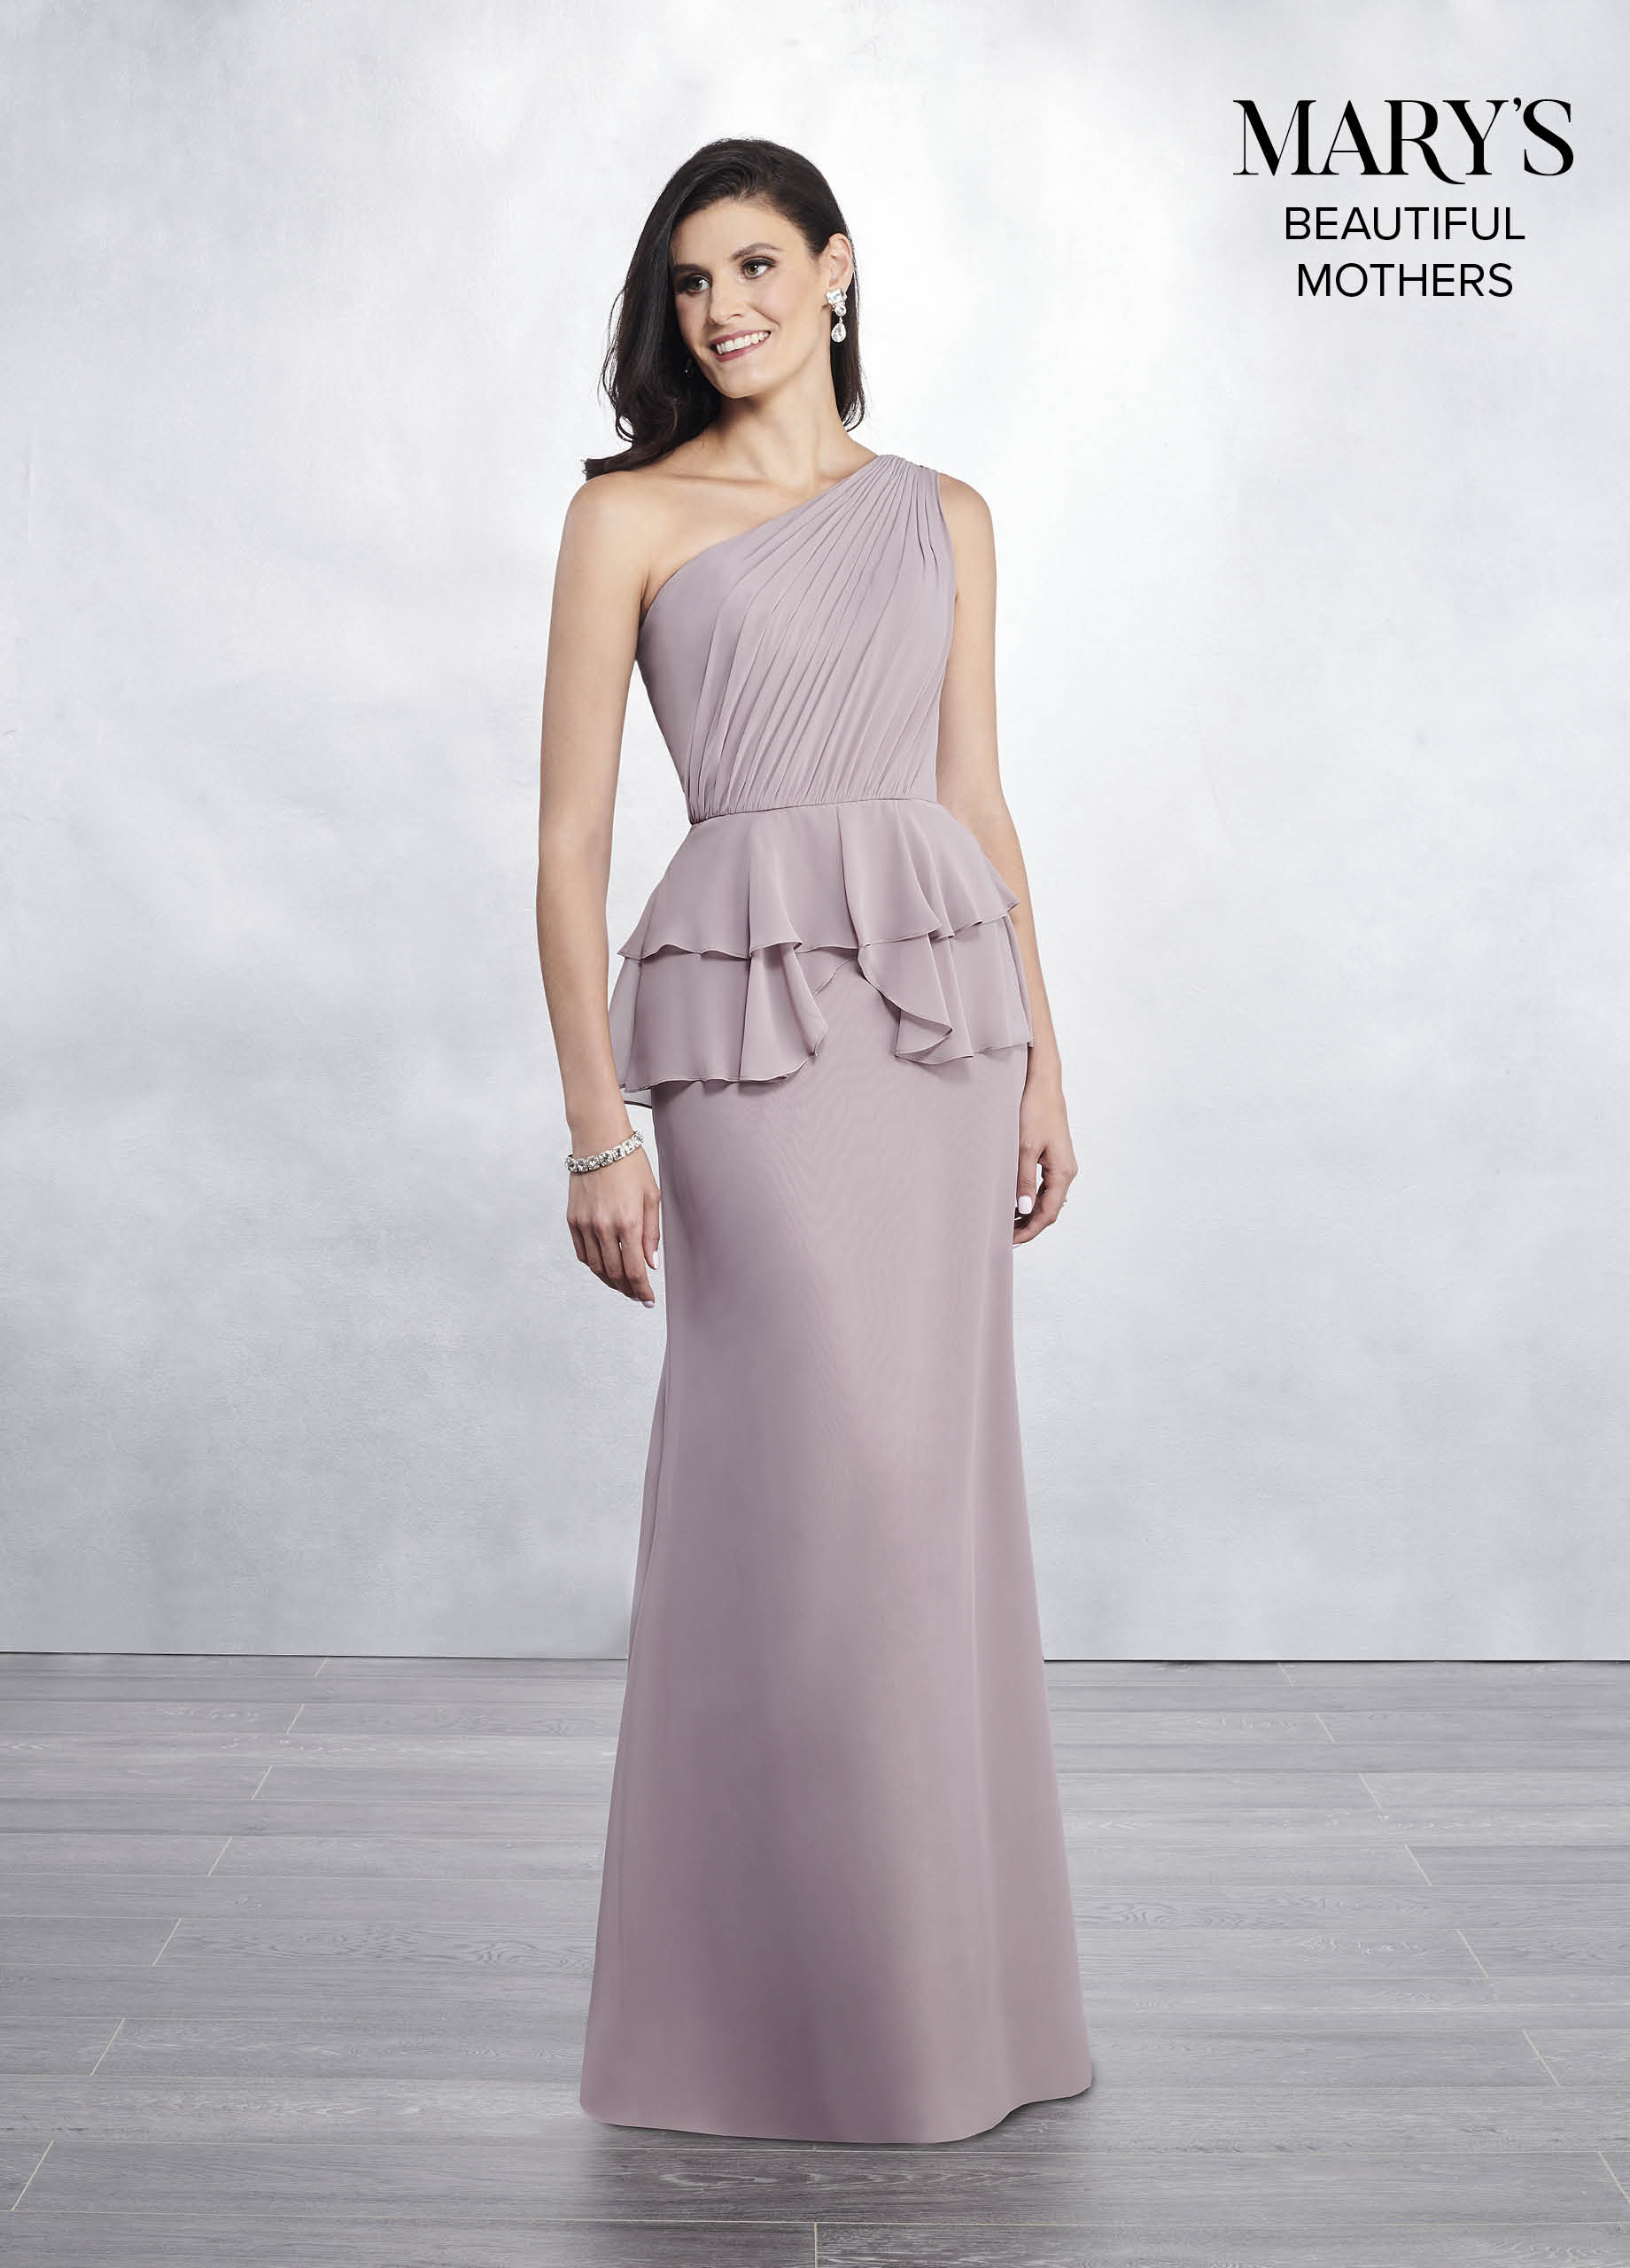 Mother Of The Bride Dresses | Beautiful Mothers | Style - MB8049